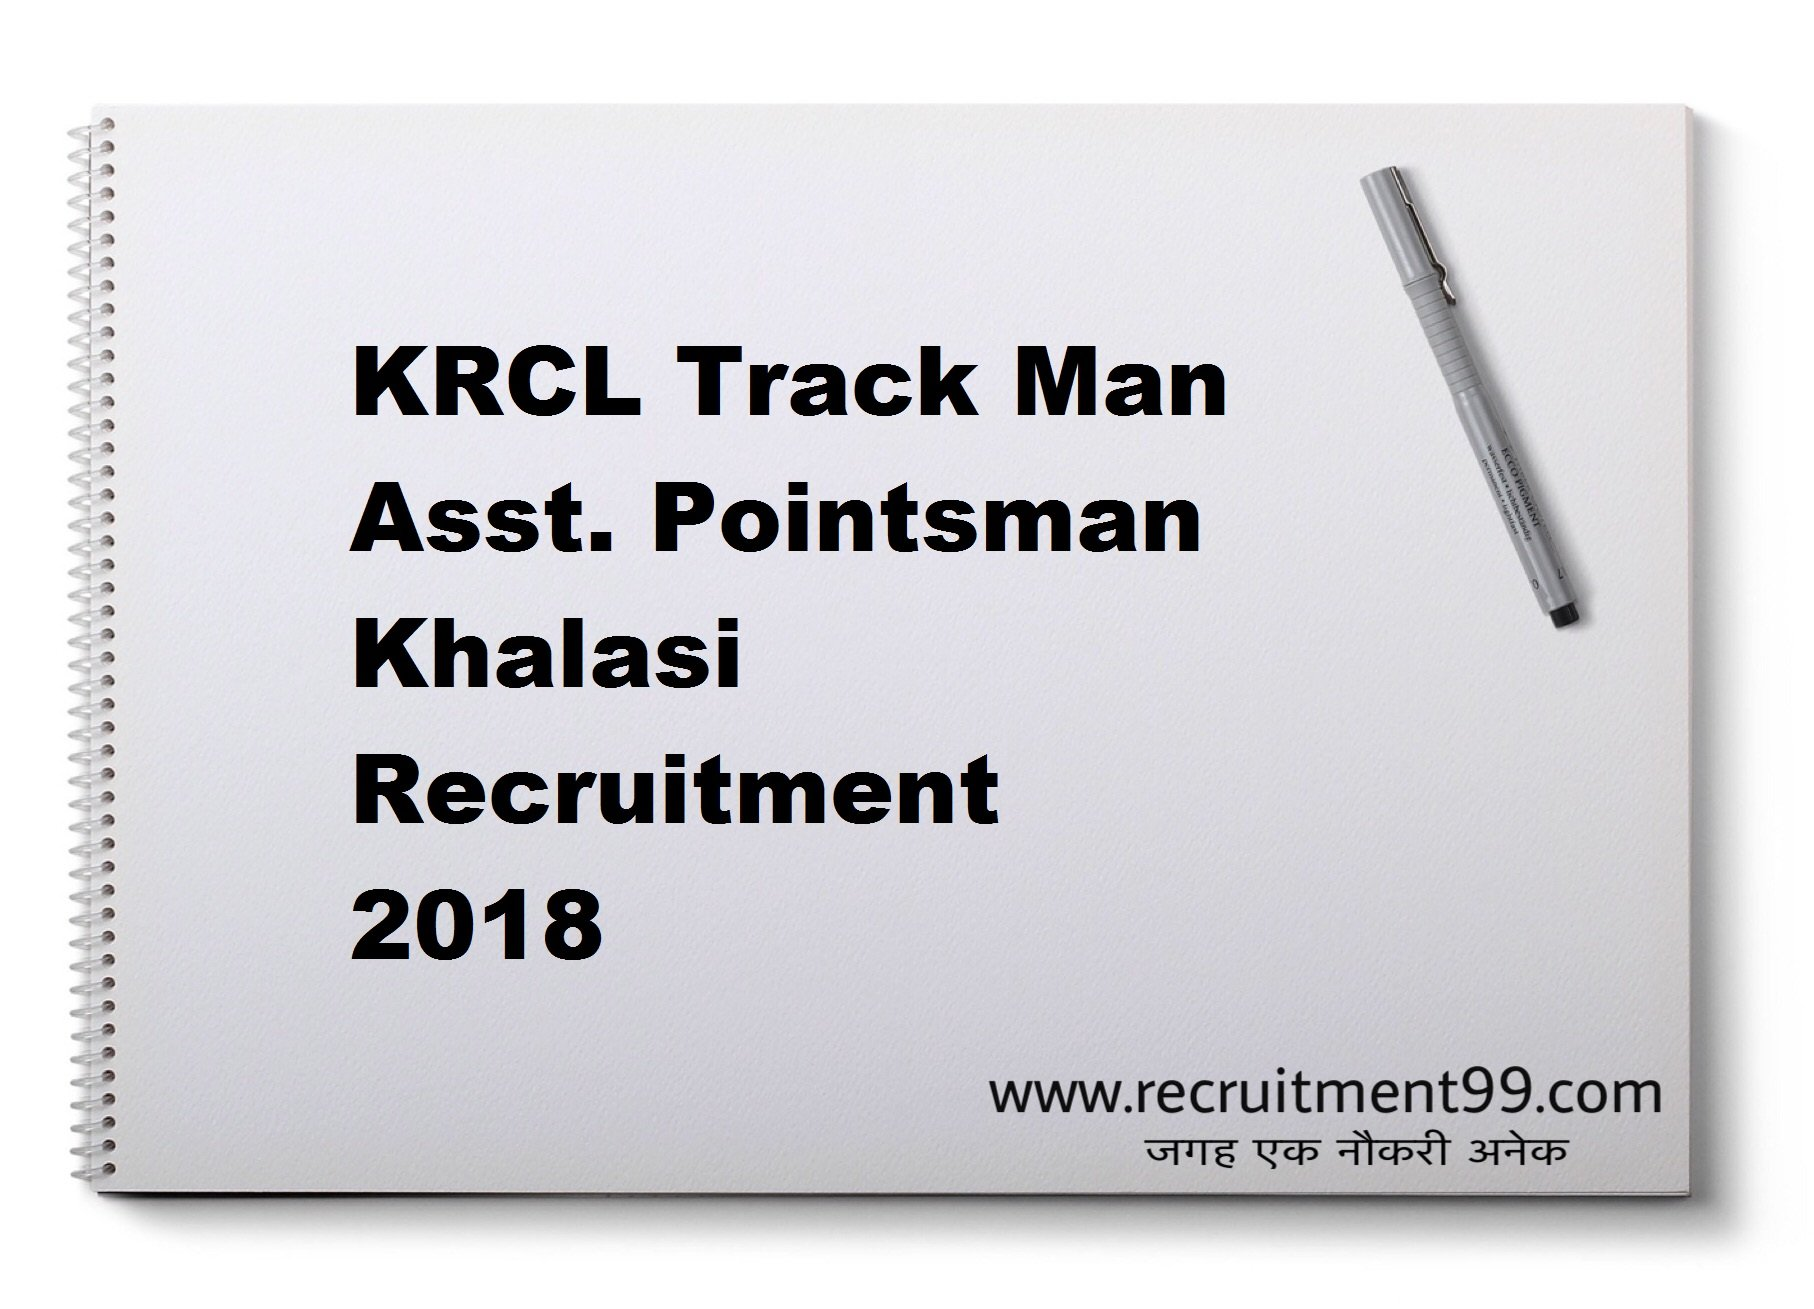 KRCL Track Man Asst. Pointsman Khalasi Recruitment Hall Ticket Result 2018